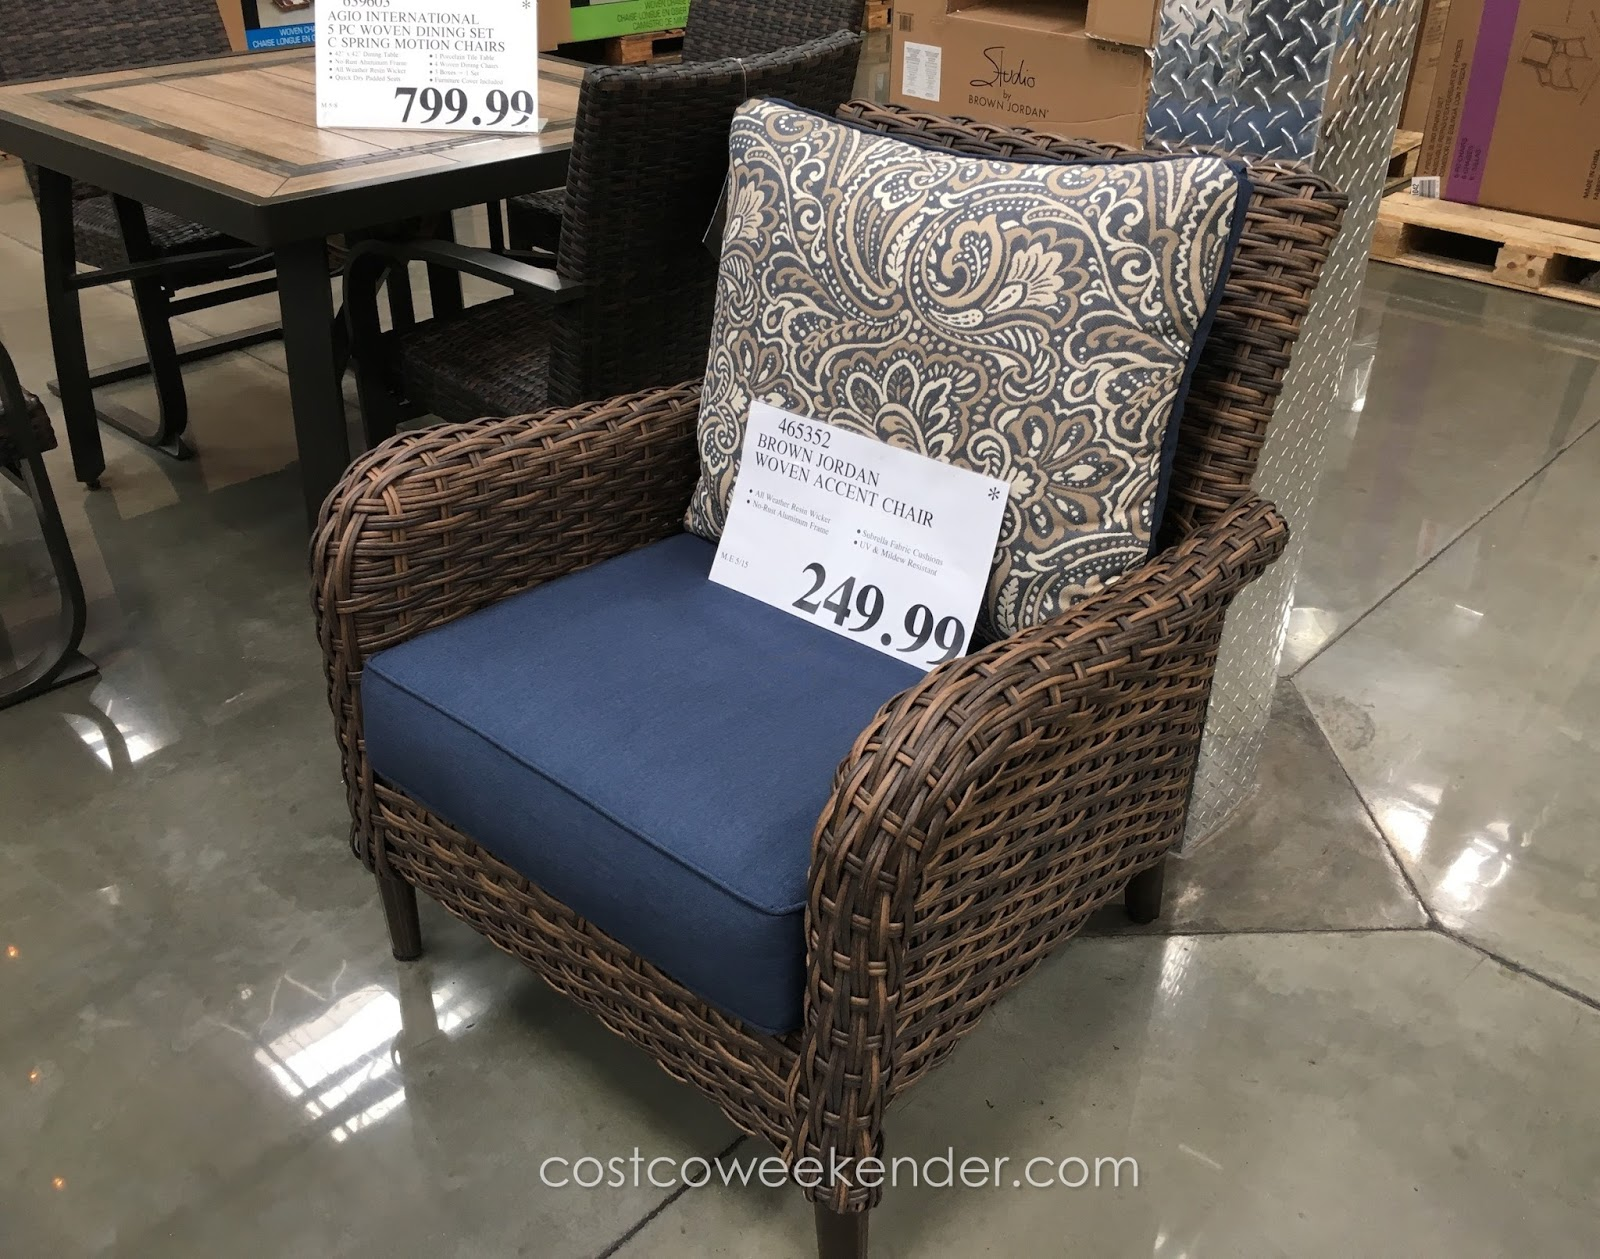 Chairs Costco Studio By Brown Jordan Woven Accent Chair Costco Weekender